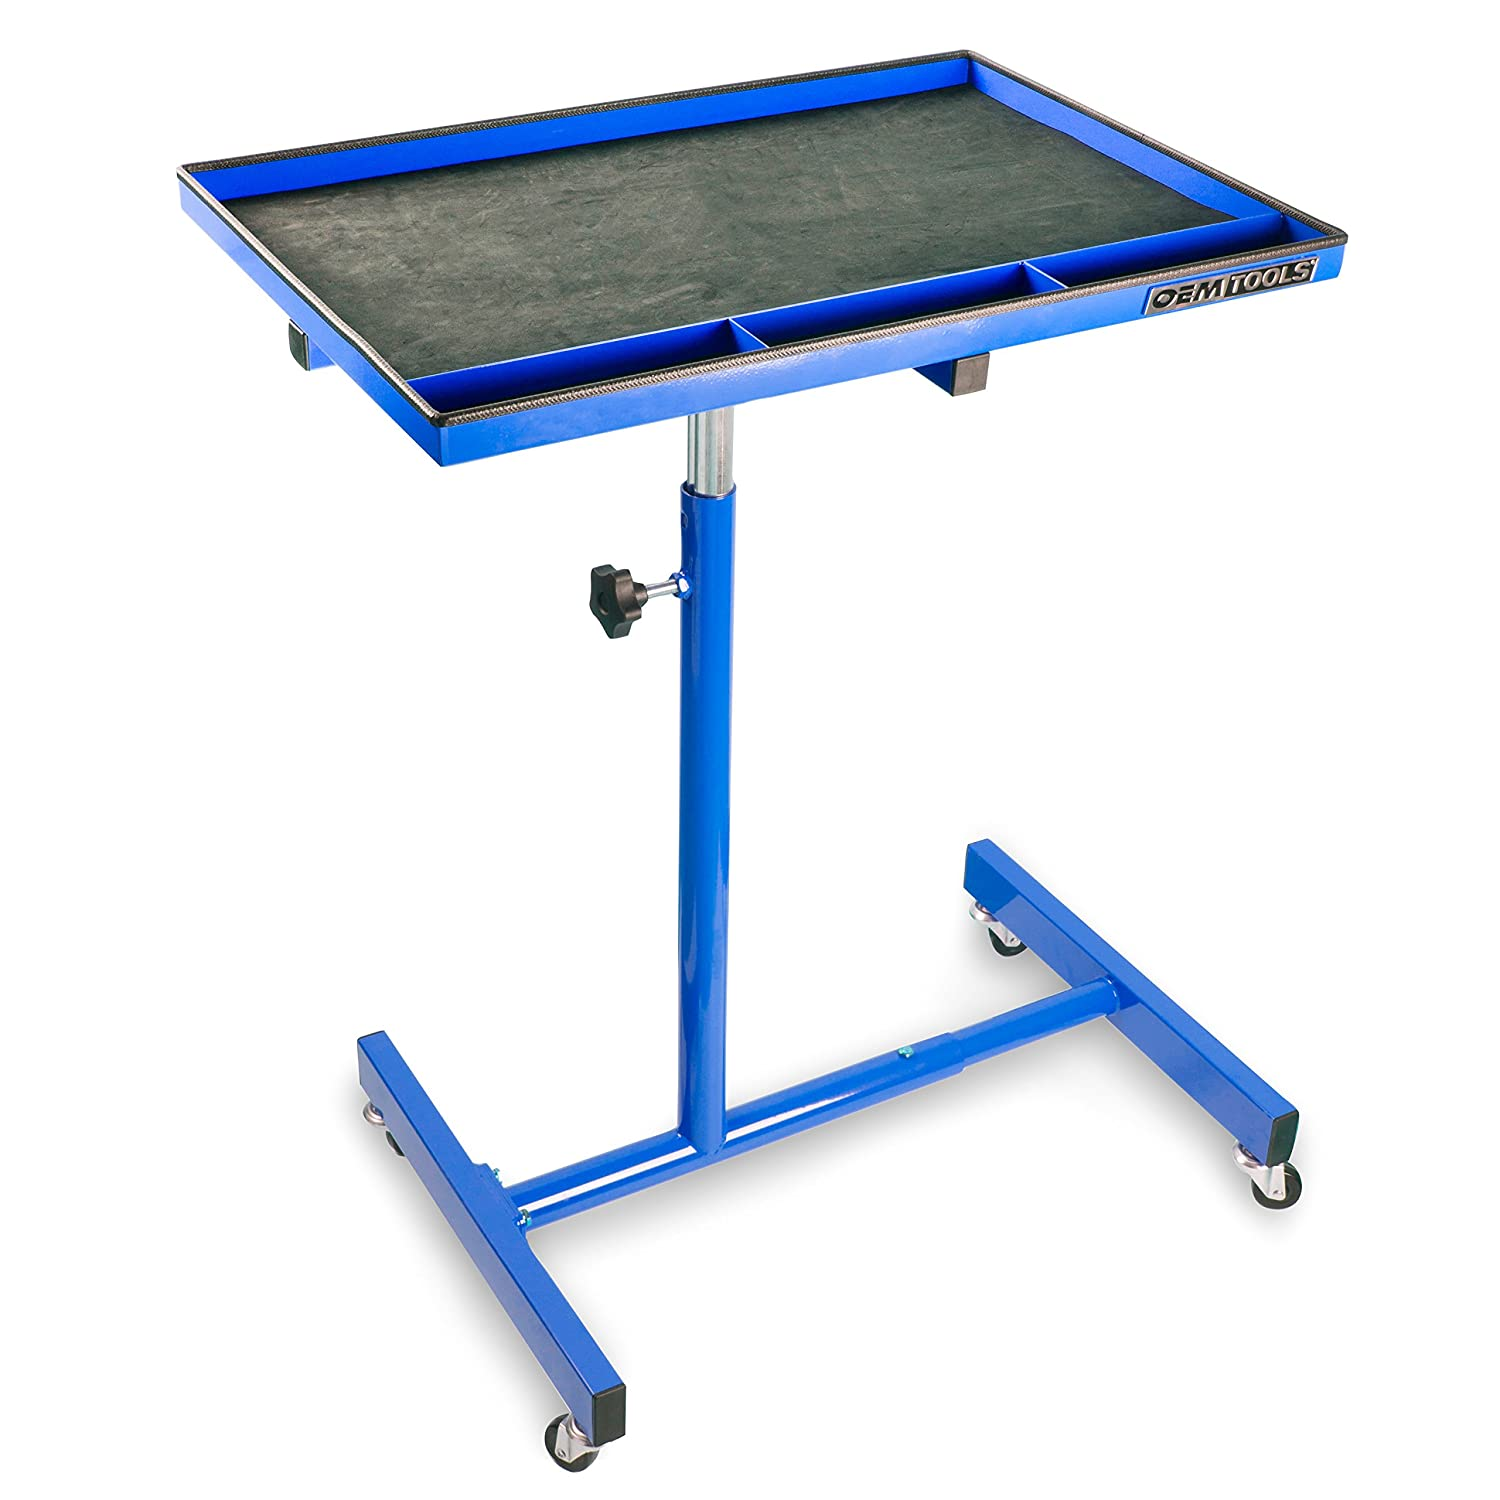 OEMTOOLS Tools 24960 Portable Tear Down Tray, Black, 29' 29 GREAT NECK